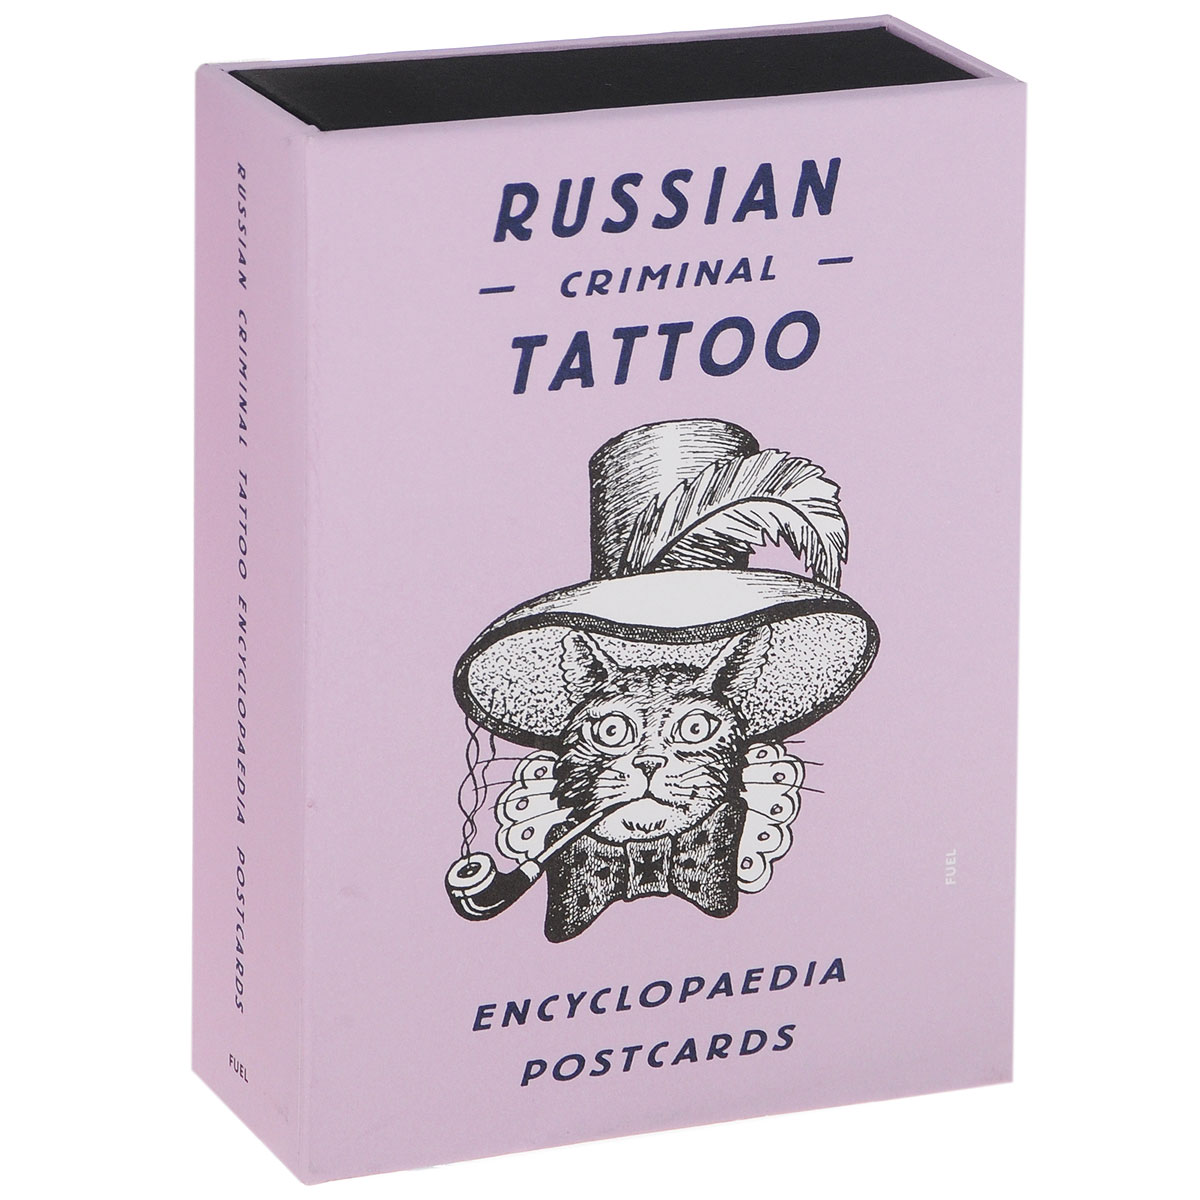 Russian Criminal Tattoo: Encyclopaedia Postcards (набор из 53 карточек)